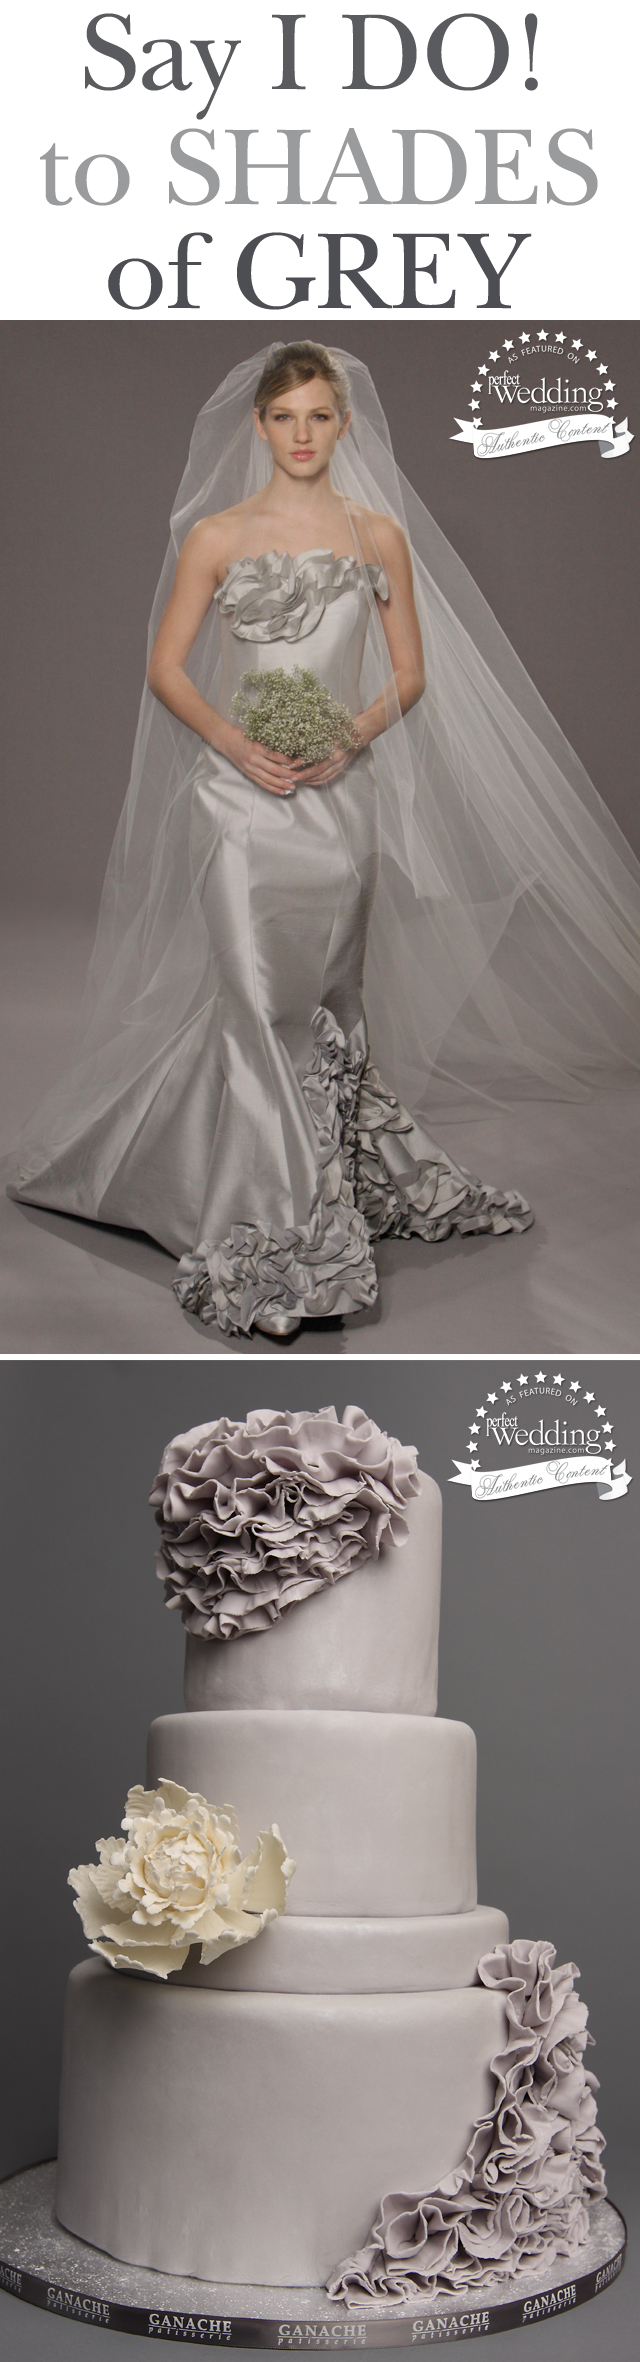 Wedding Cakes, Bridal Couture, Romona Keveza, Fifty Shades of Grey, Perfect Wedding Magazine